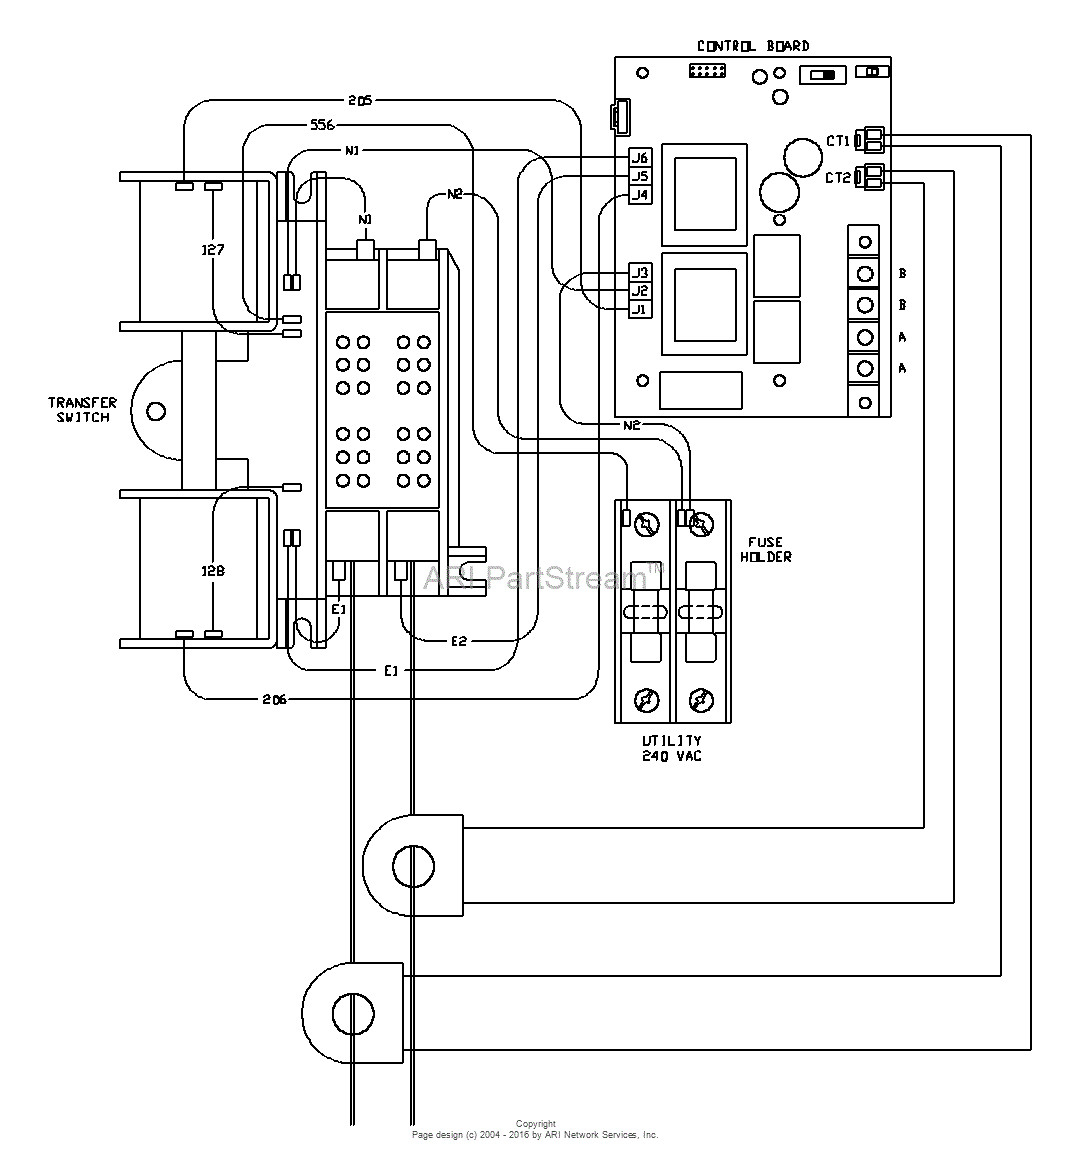 Generac Manual Transfer Switch Wiring Diagram Download on